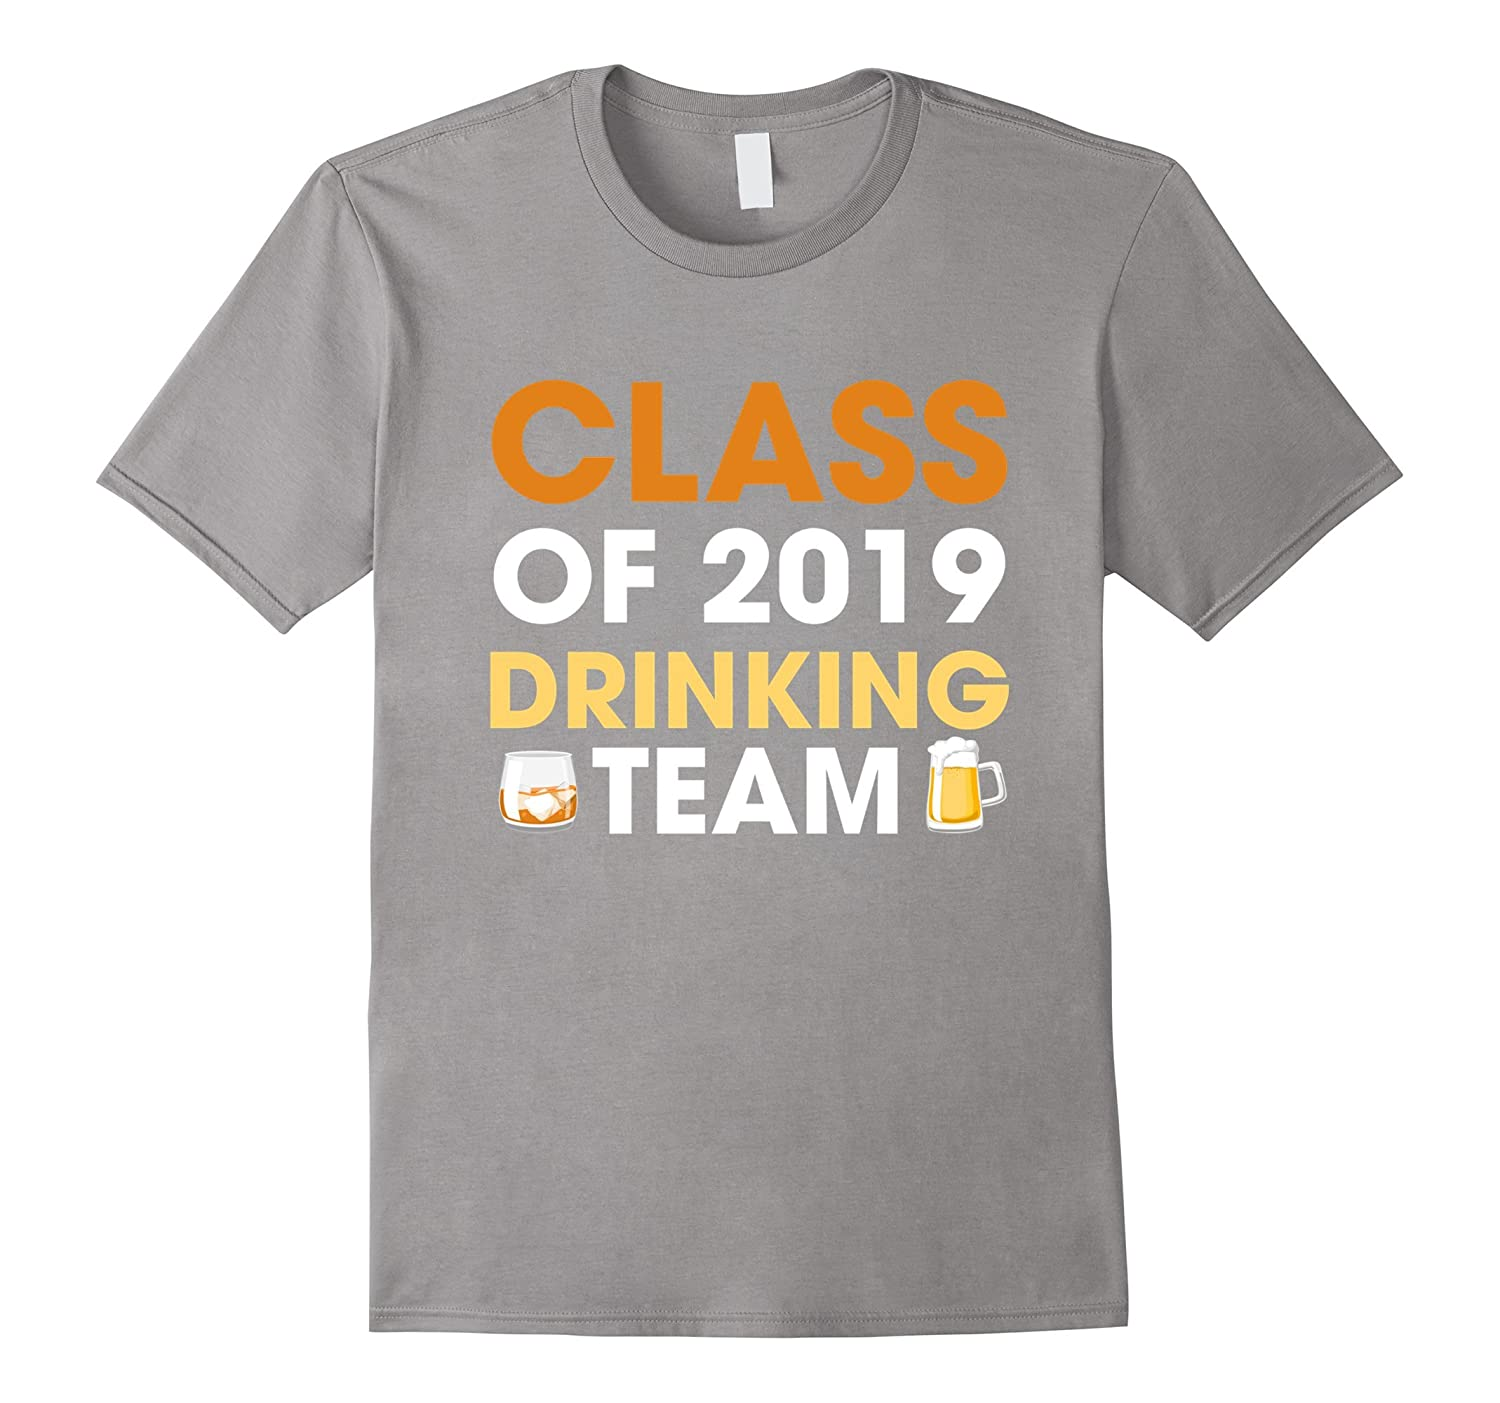 c34b4a22 Class Of 2019 Drinking Team Funny Party Gift T-Shirt-gm – Ganamatee